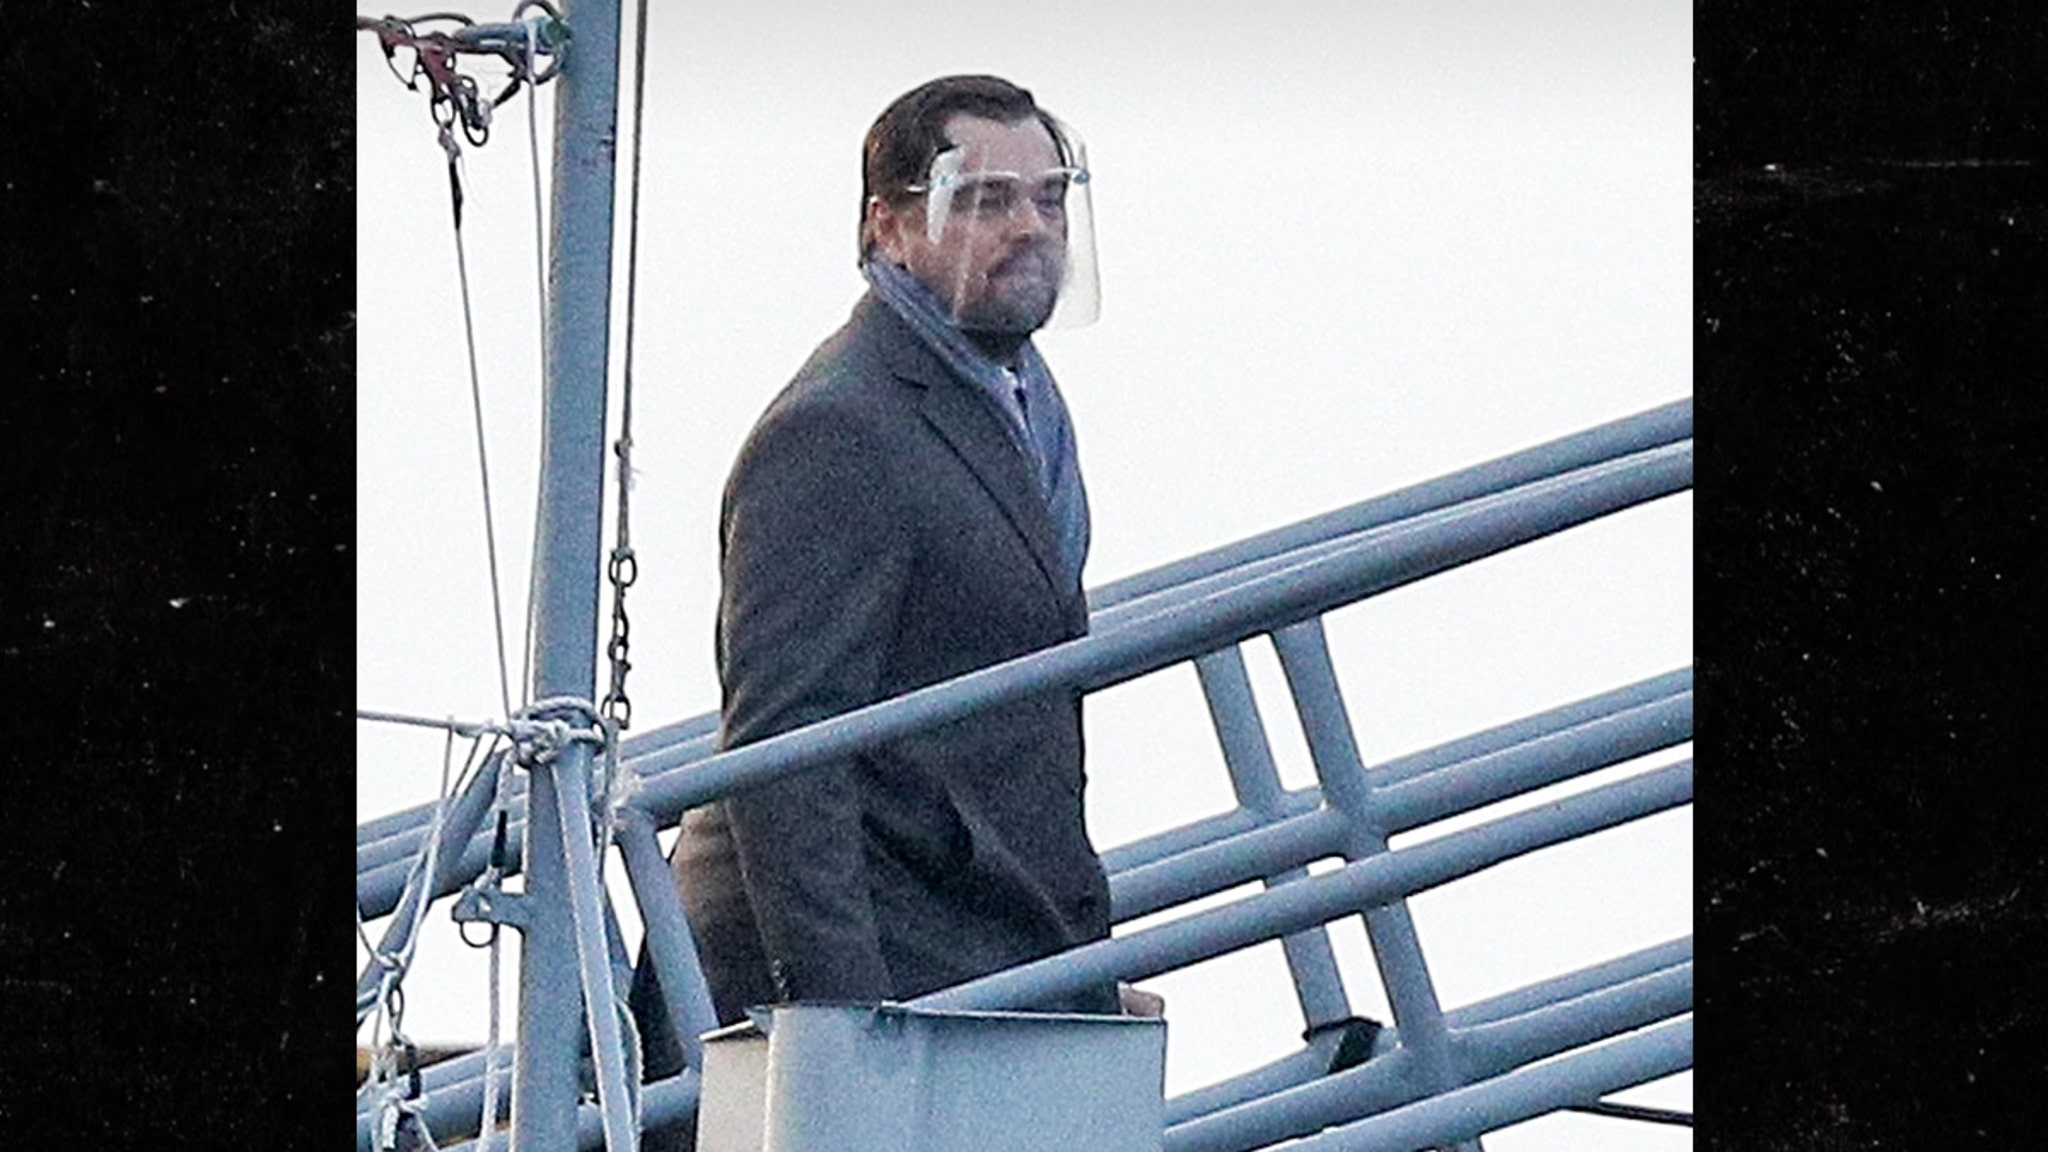 Leo DiCaprio, J. Law Shield Themselves on Set, Matthew Perry Looks Good thumbnail